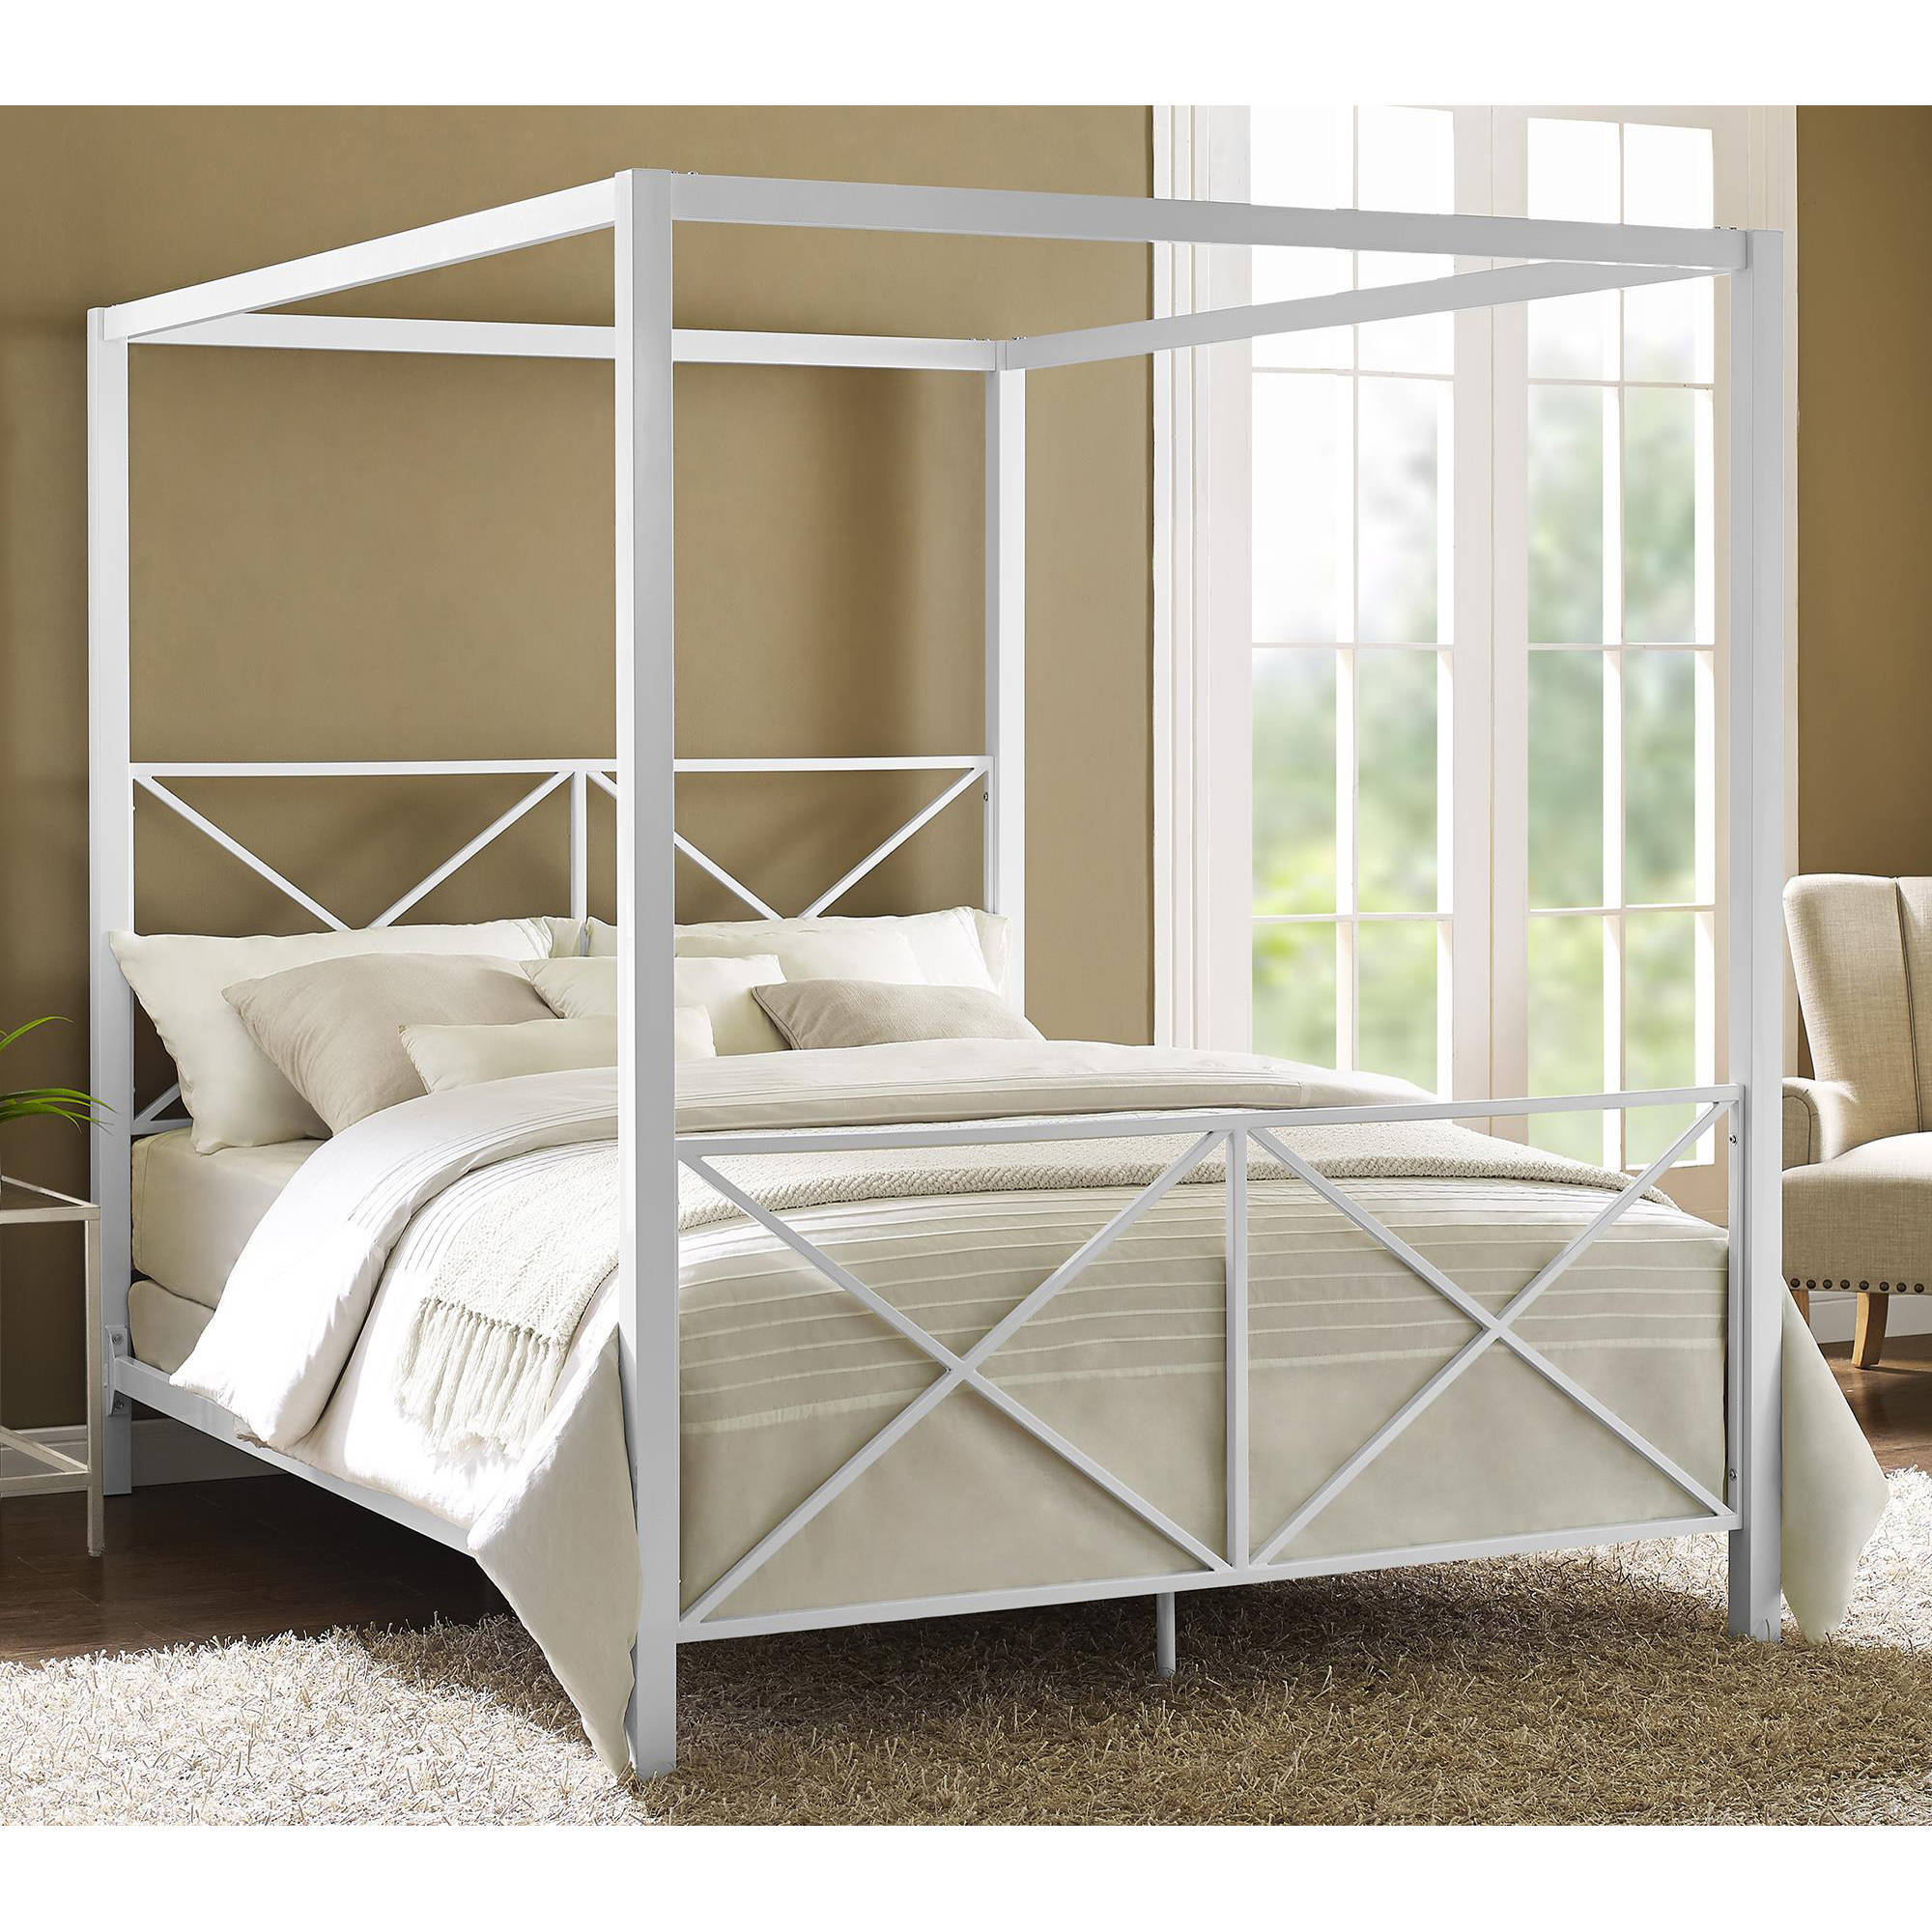 DHP Rosedale Metal Canopy Bed Frame, Queen Size, Multiple Colors